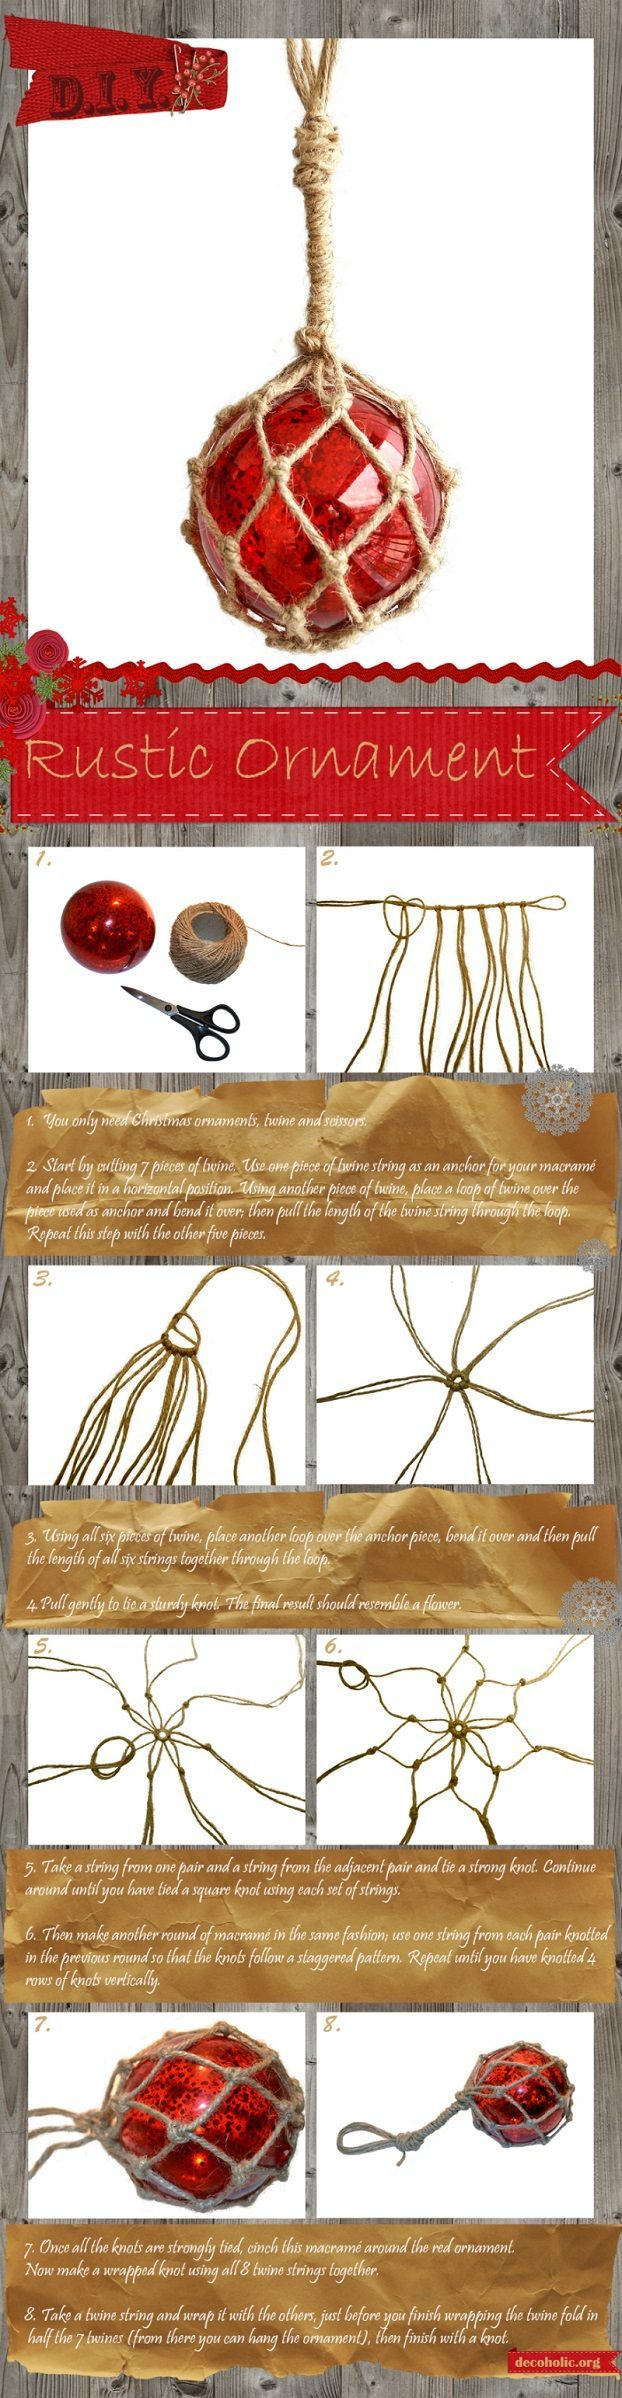 21 Stylish Christmas Craft Ideas - Decoholic....I am happy to share with you the steps to create this plain yet distinctive rustic macramé ornament with spectacular effects all by yourself.